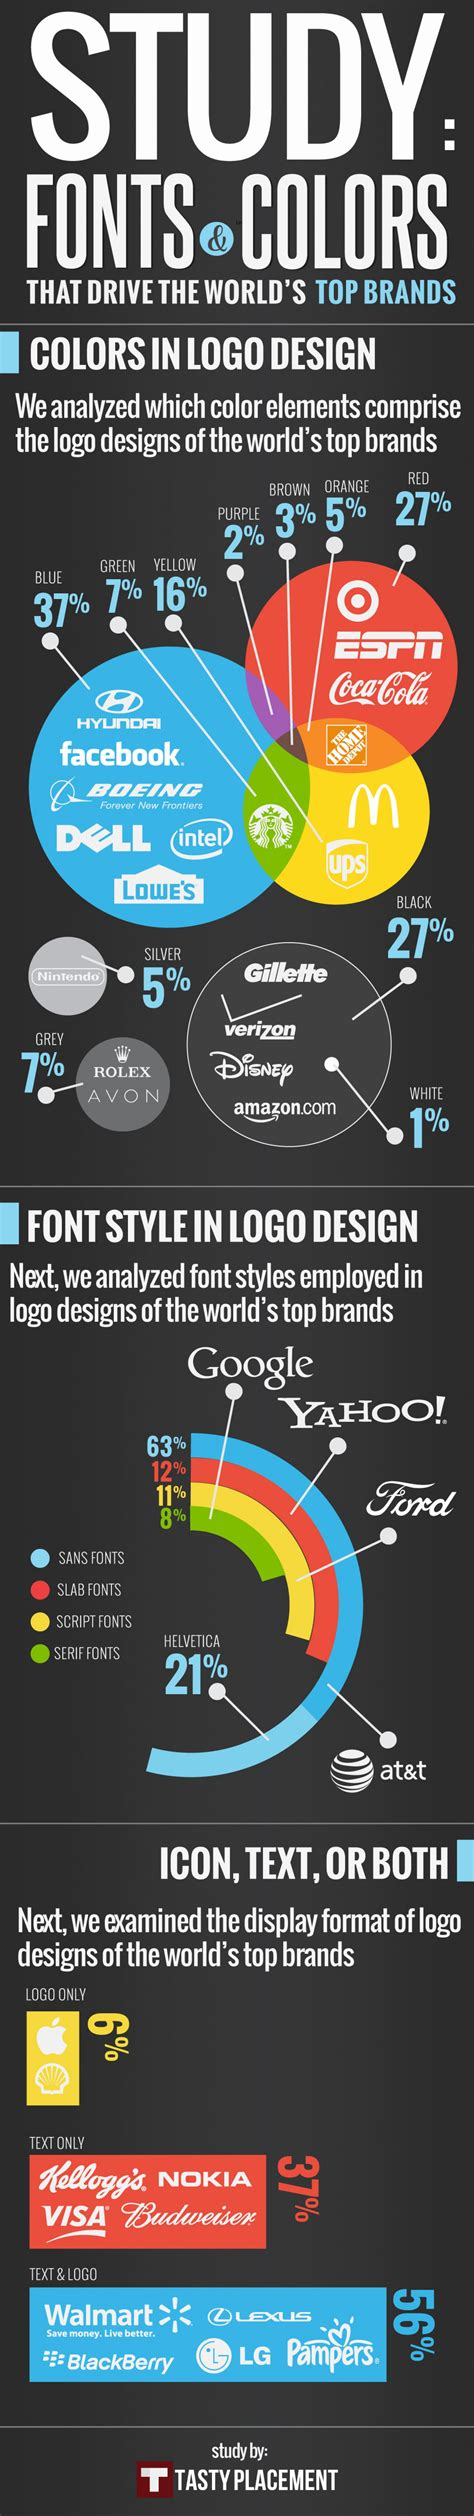 Fonts & Colors That Drive The World's Top Brands Visually